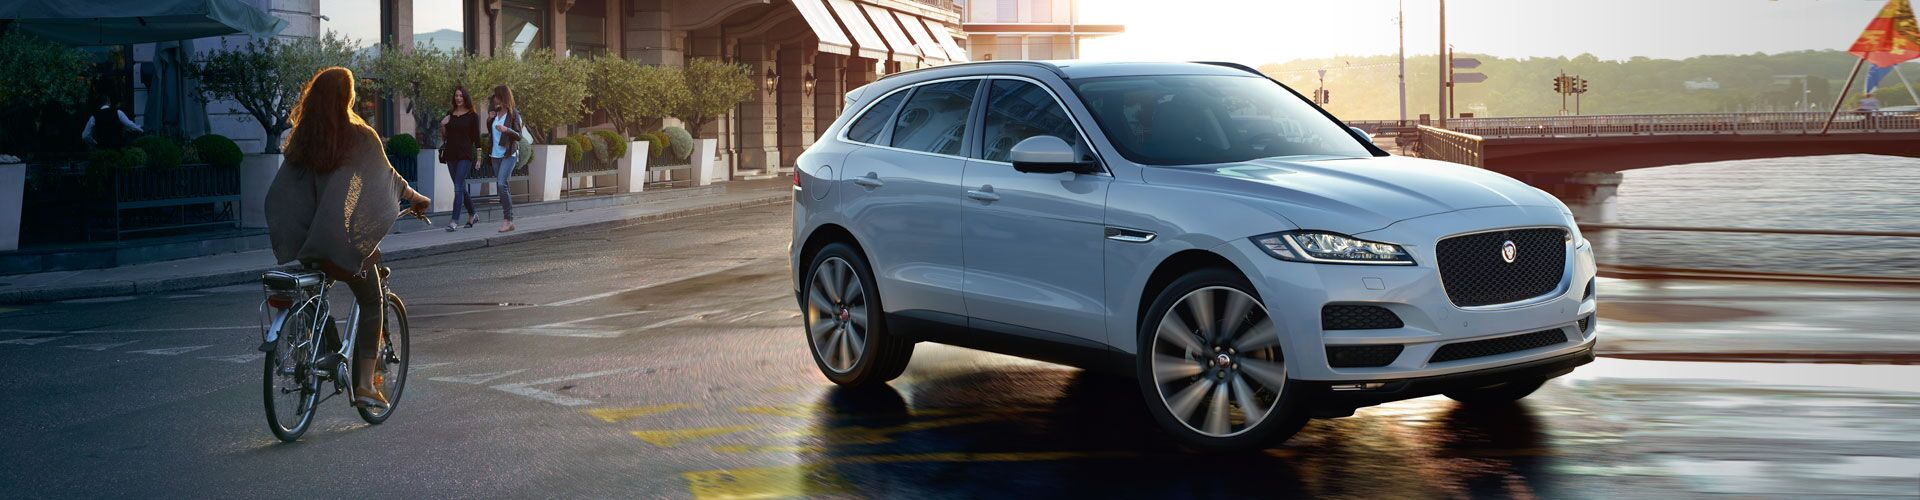 New Jaguar F-PACE at Jaguar Ventura